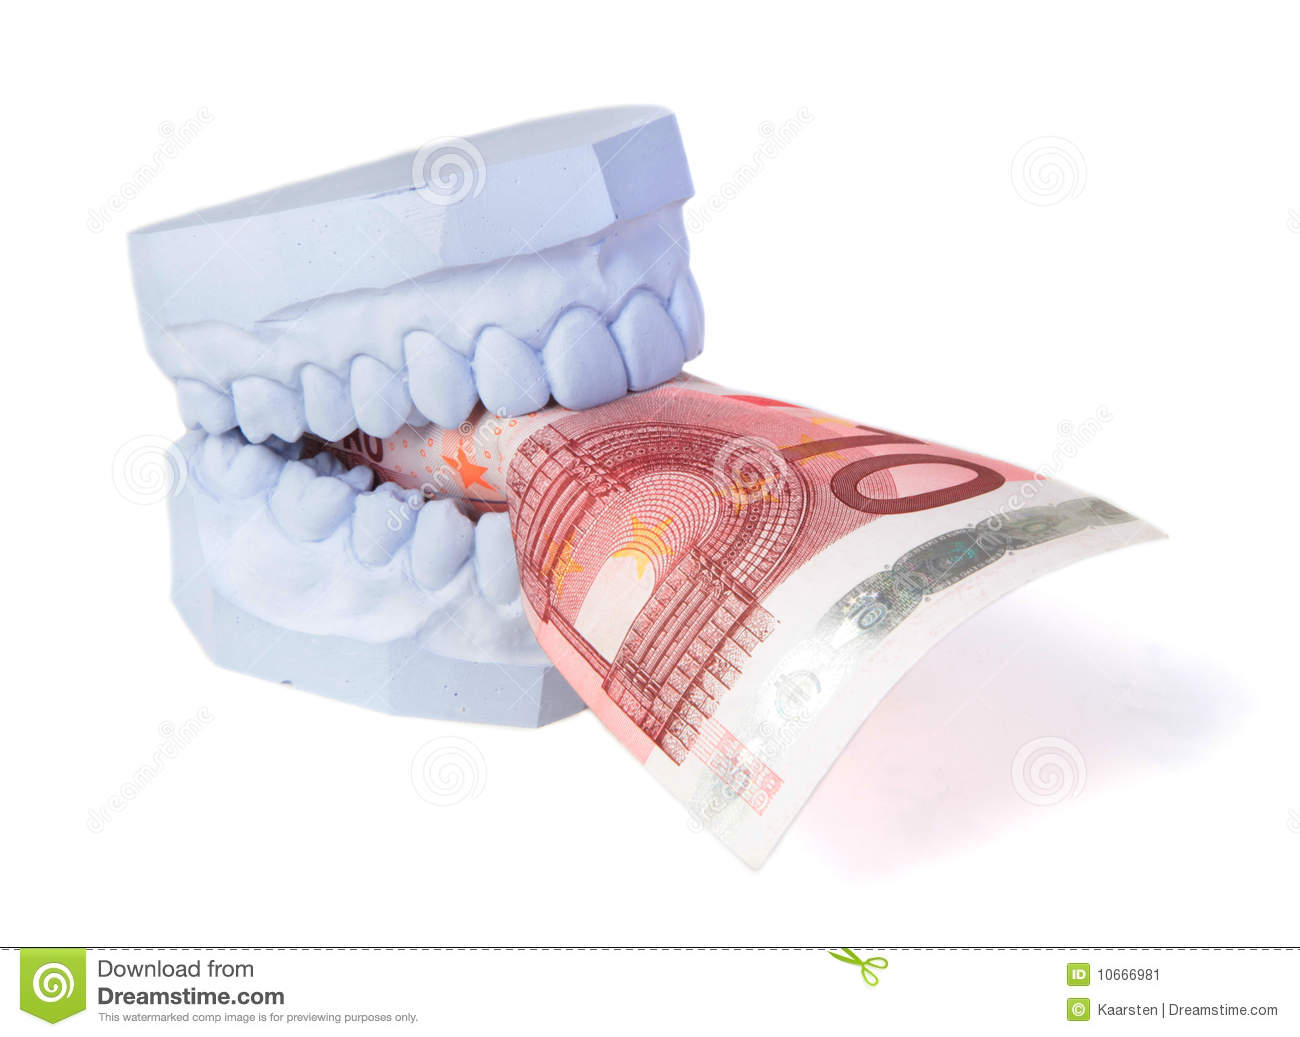 Dentures Cost submited images